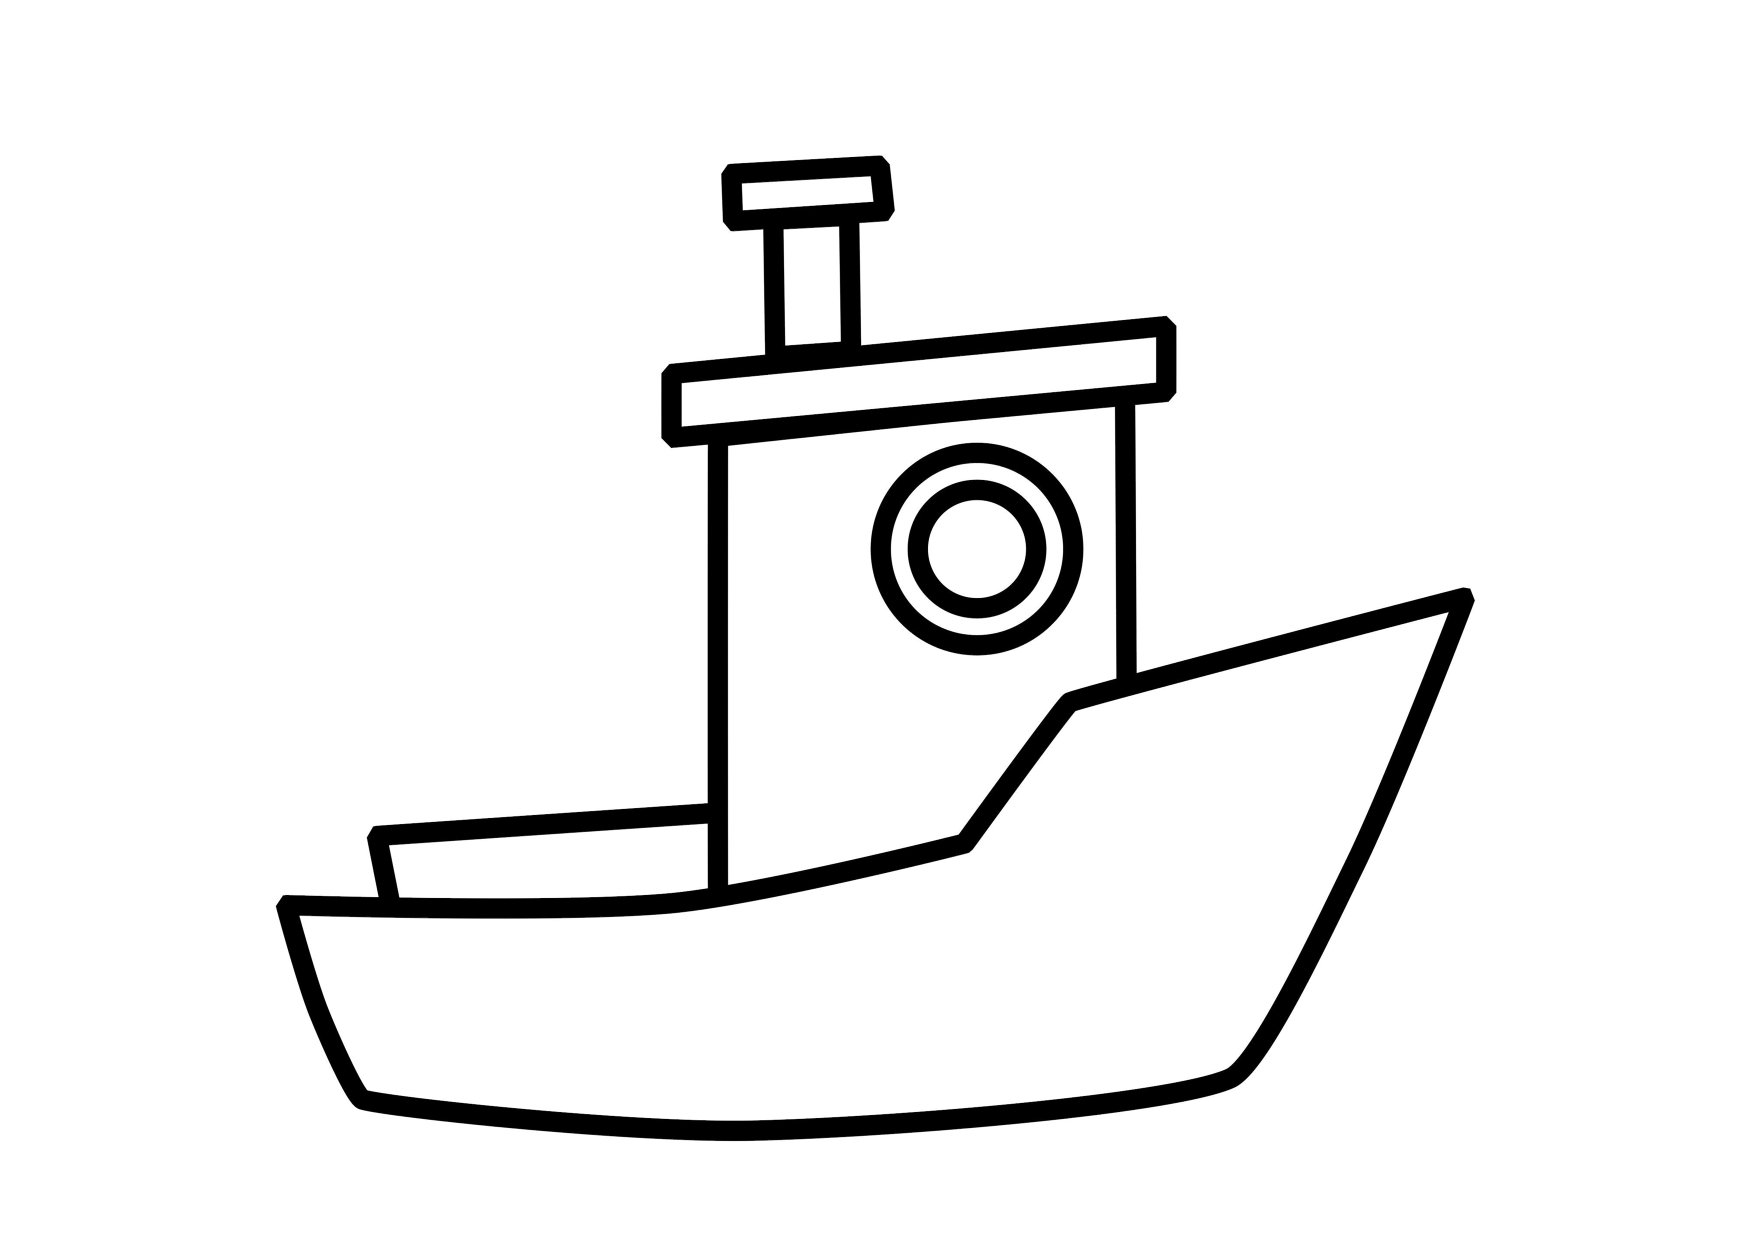 boat coloring printable boat coloring pages for kids cool2bkids boat coloring